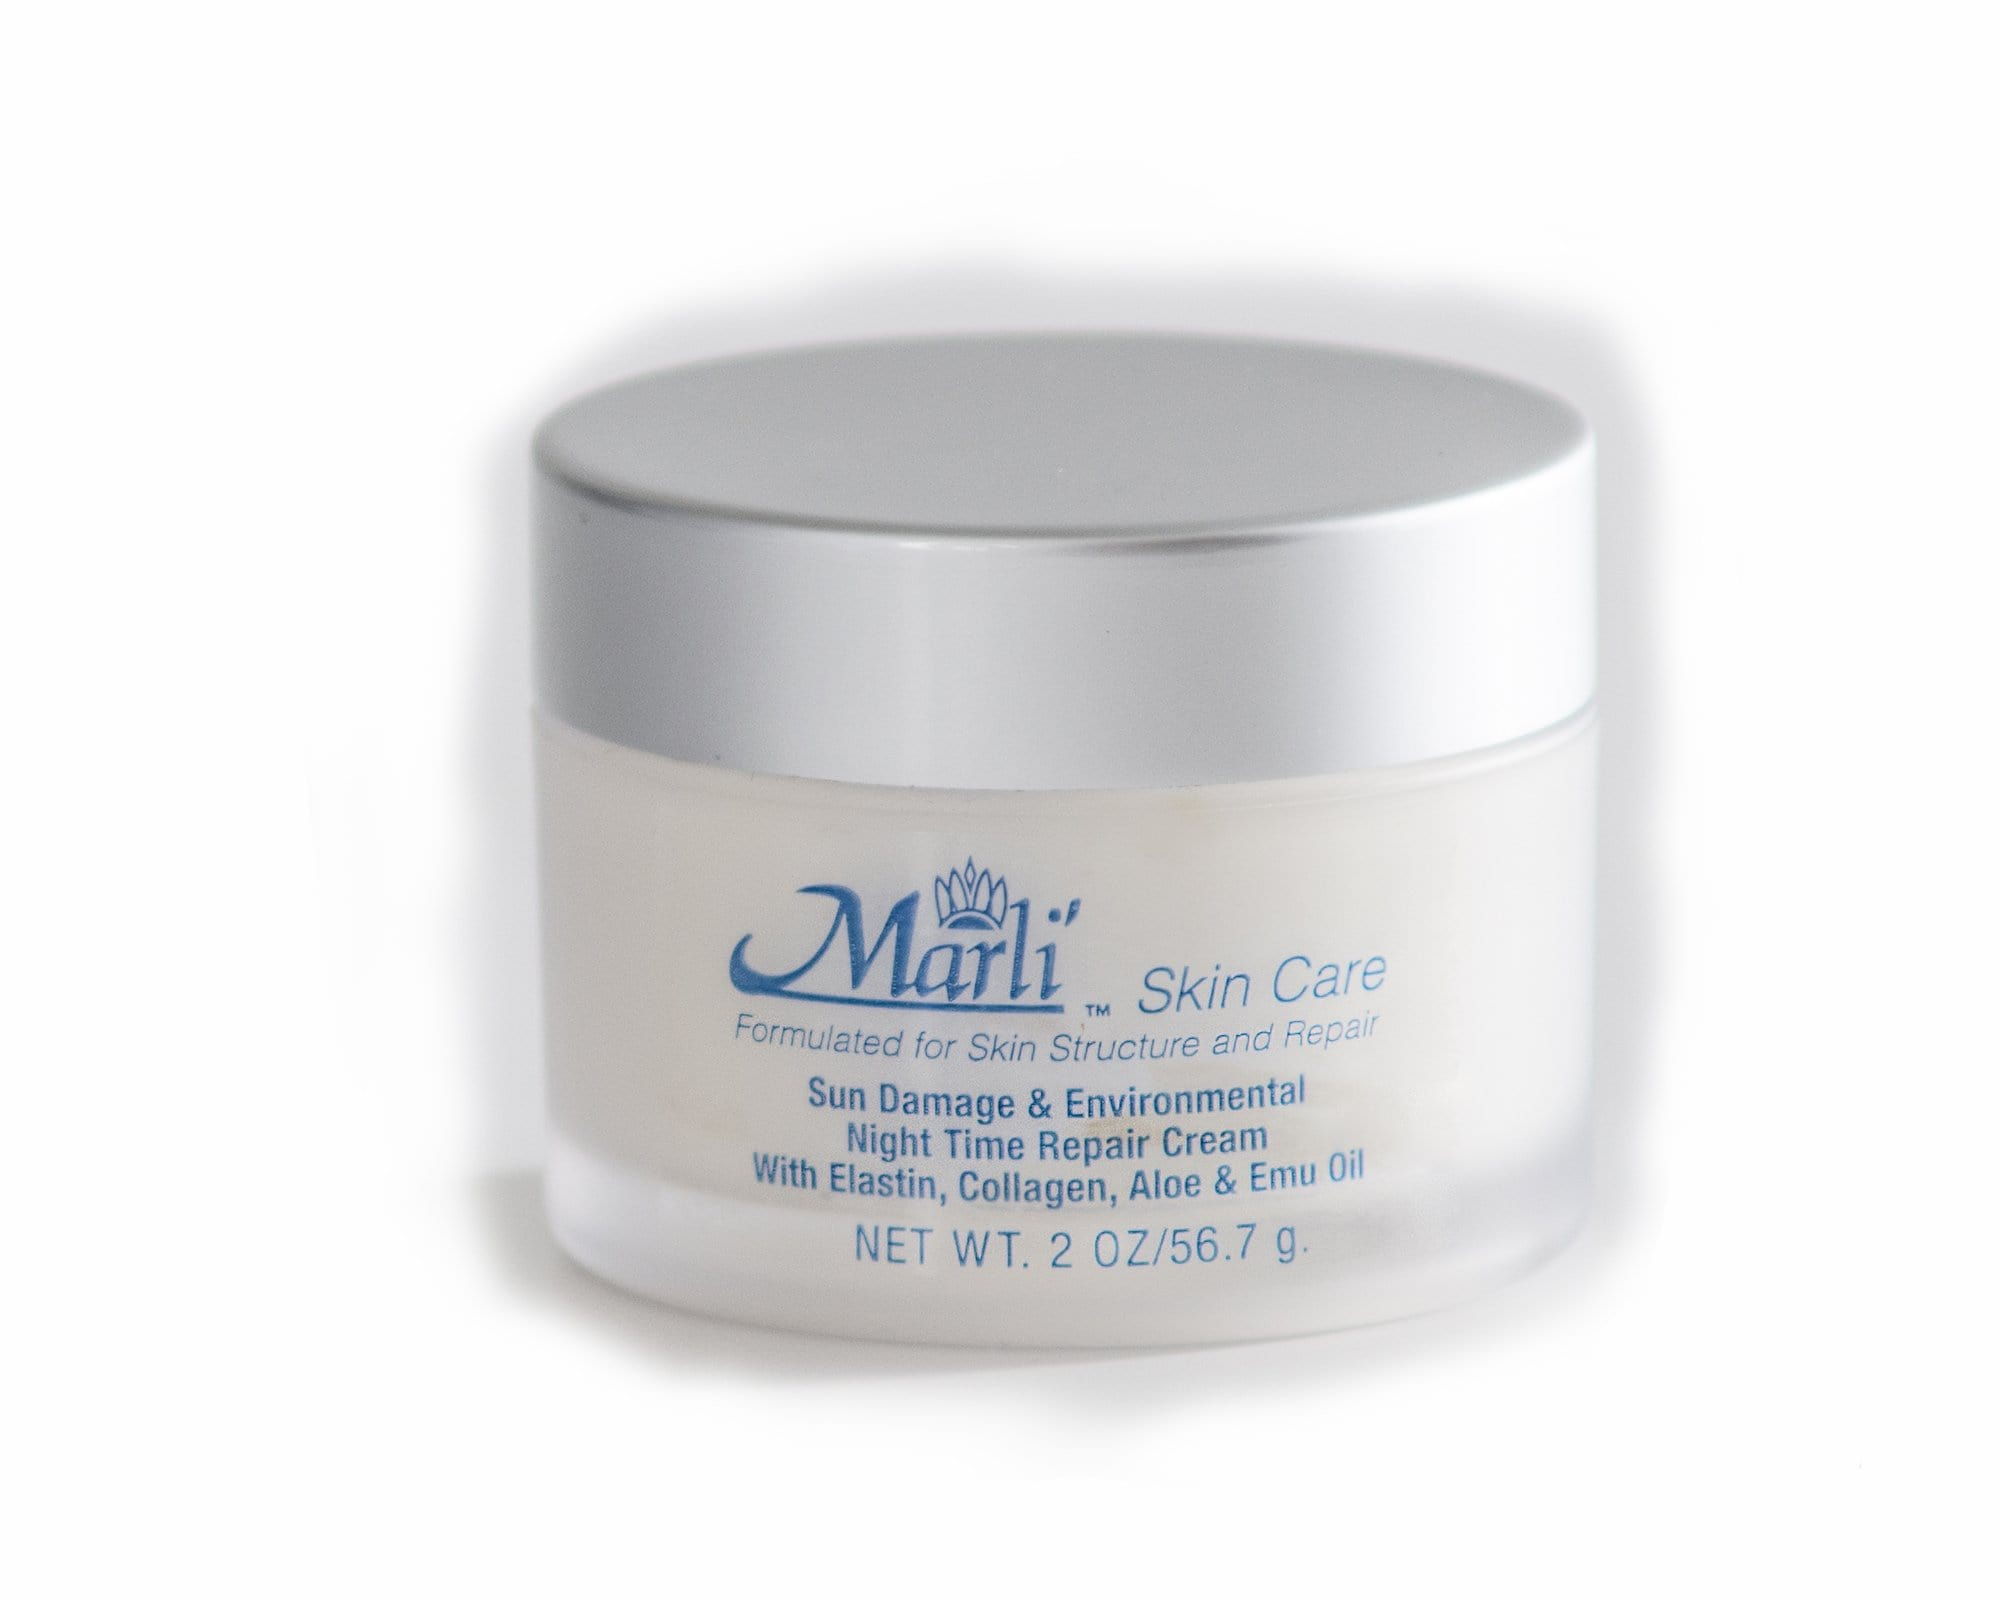 Marli Skin Care Skin Care Marli Complete Skin Care Kit with Sun Damage & Environmental Night Time Repair Cream